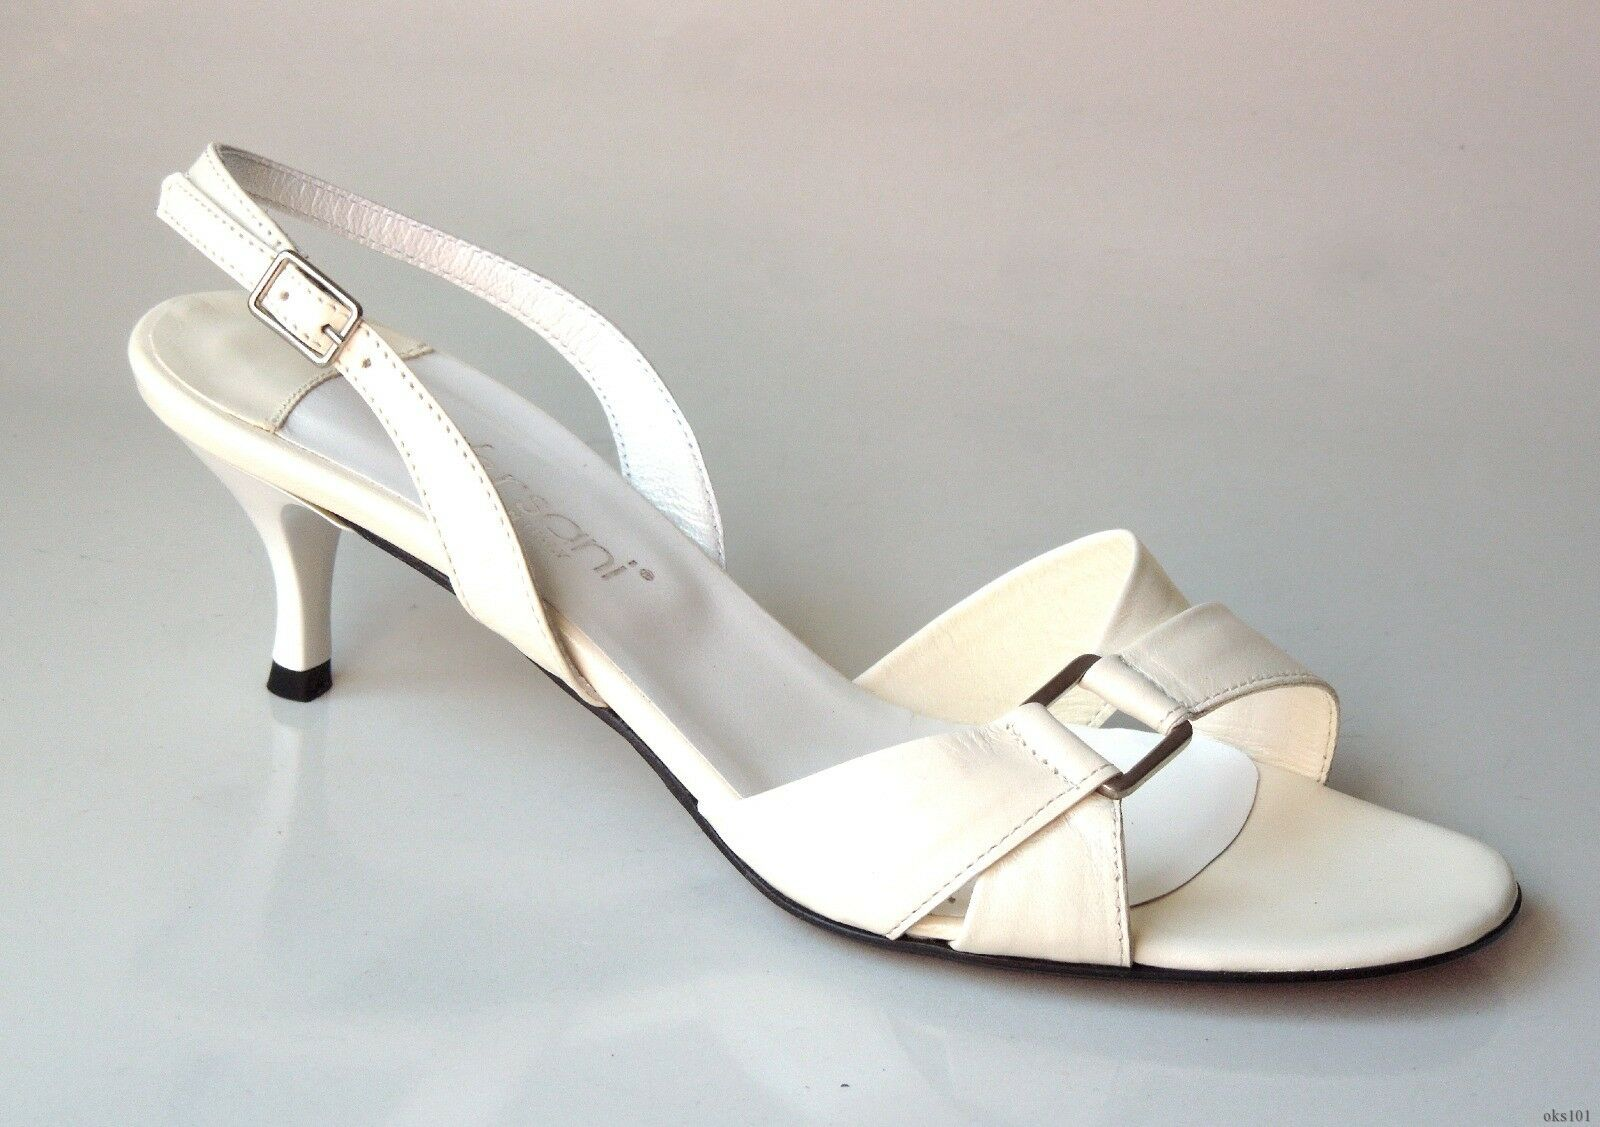 NEU Versani 922 ivory Leder open-toe slingback Sandale Schuhes made in